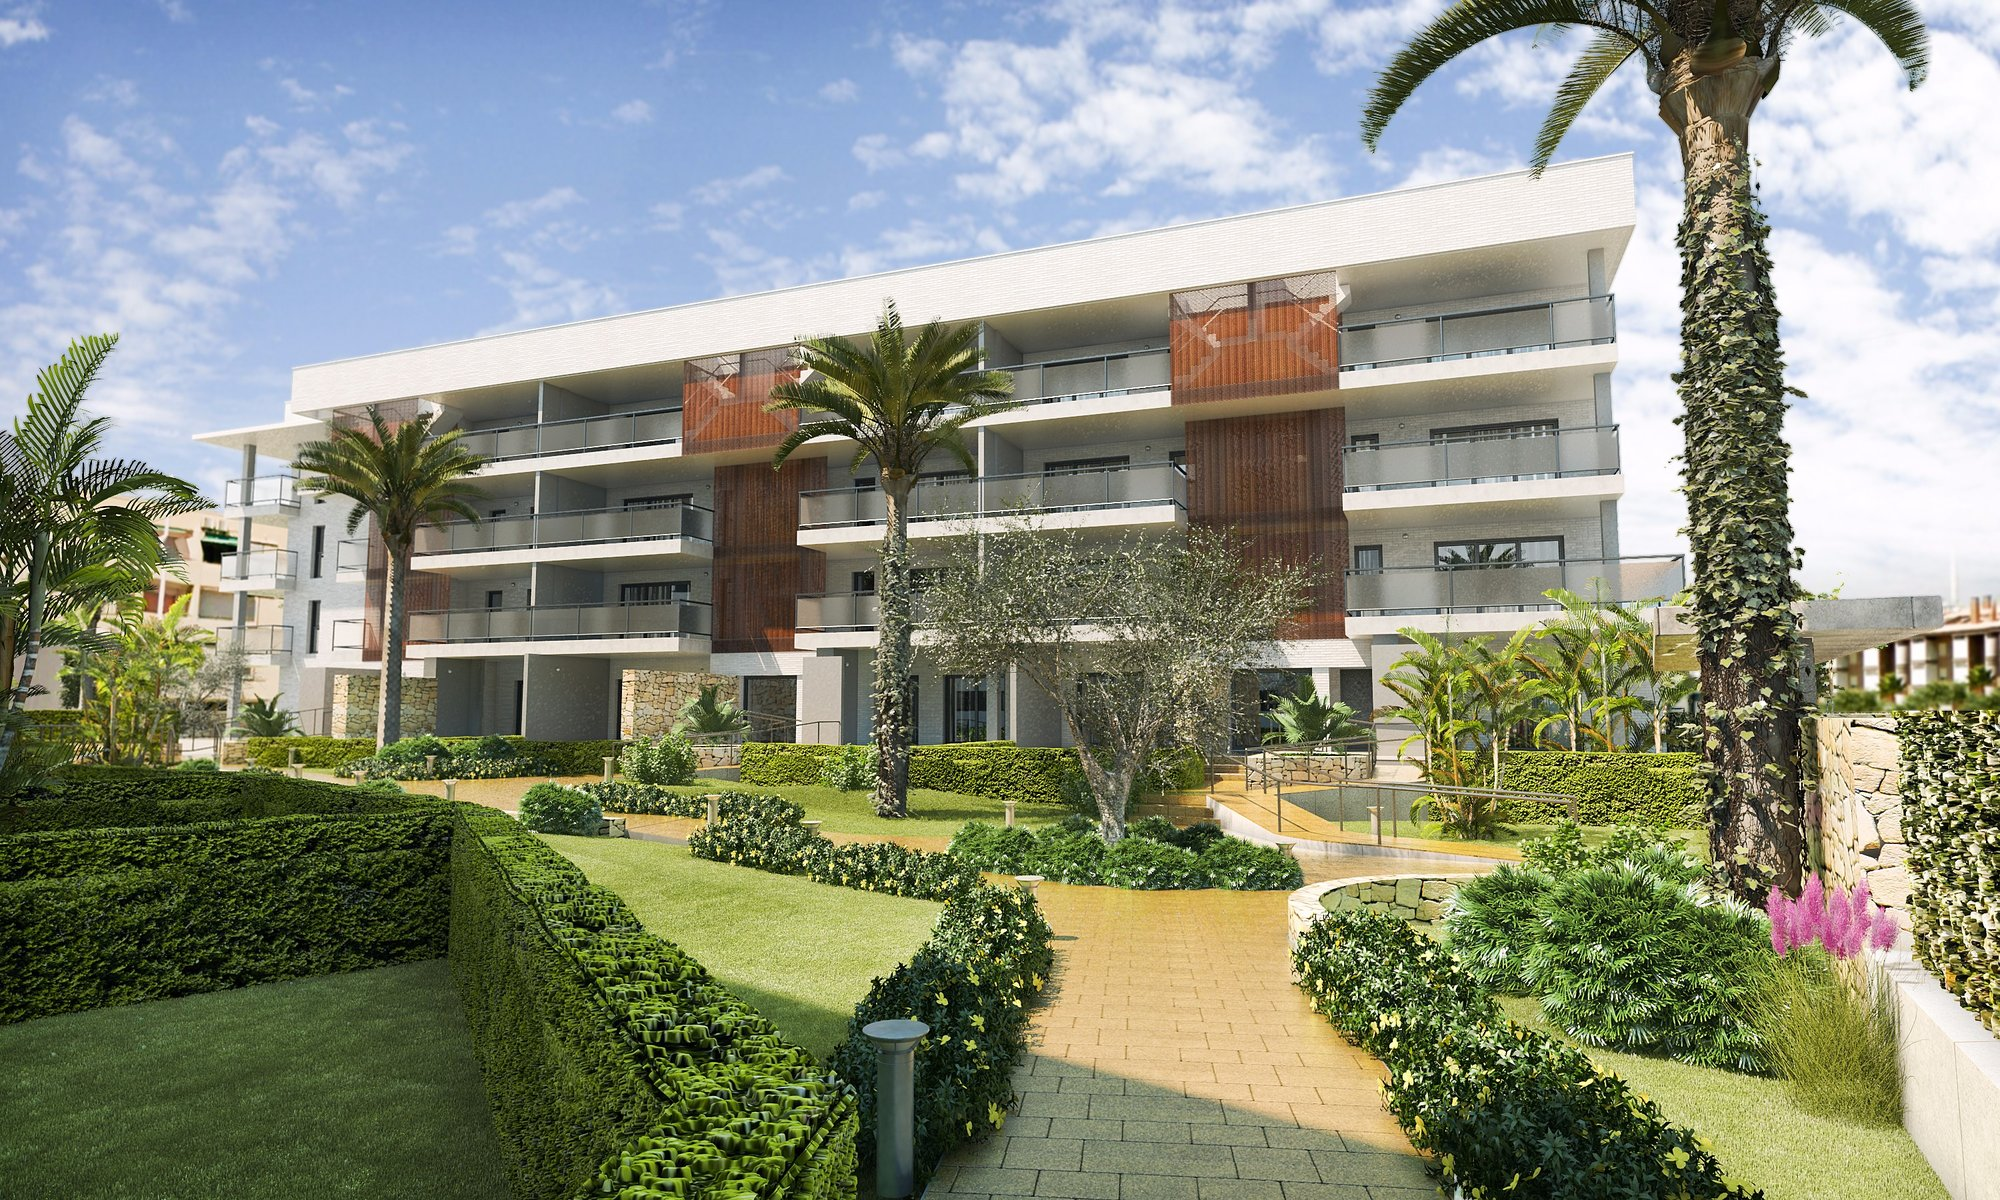 Apartment for sale in El Arenal